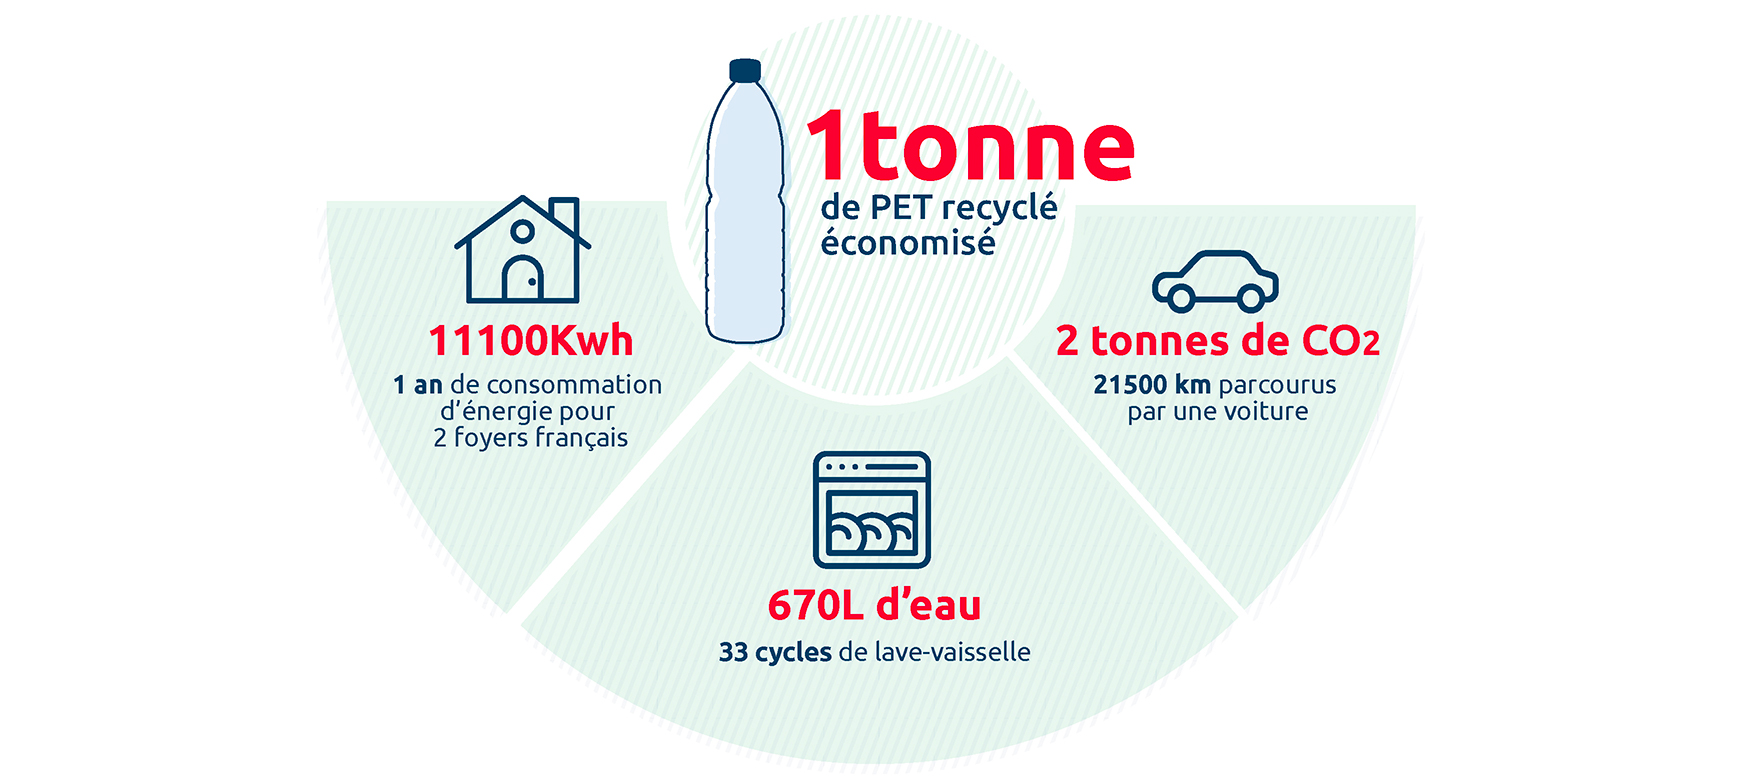 Vittel tonne PET recyclé